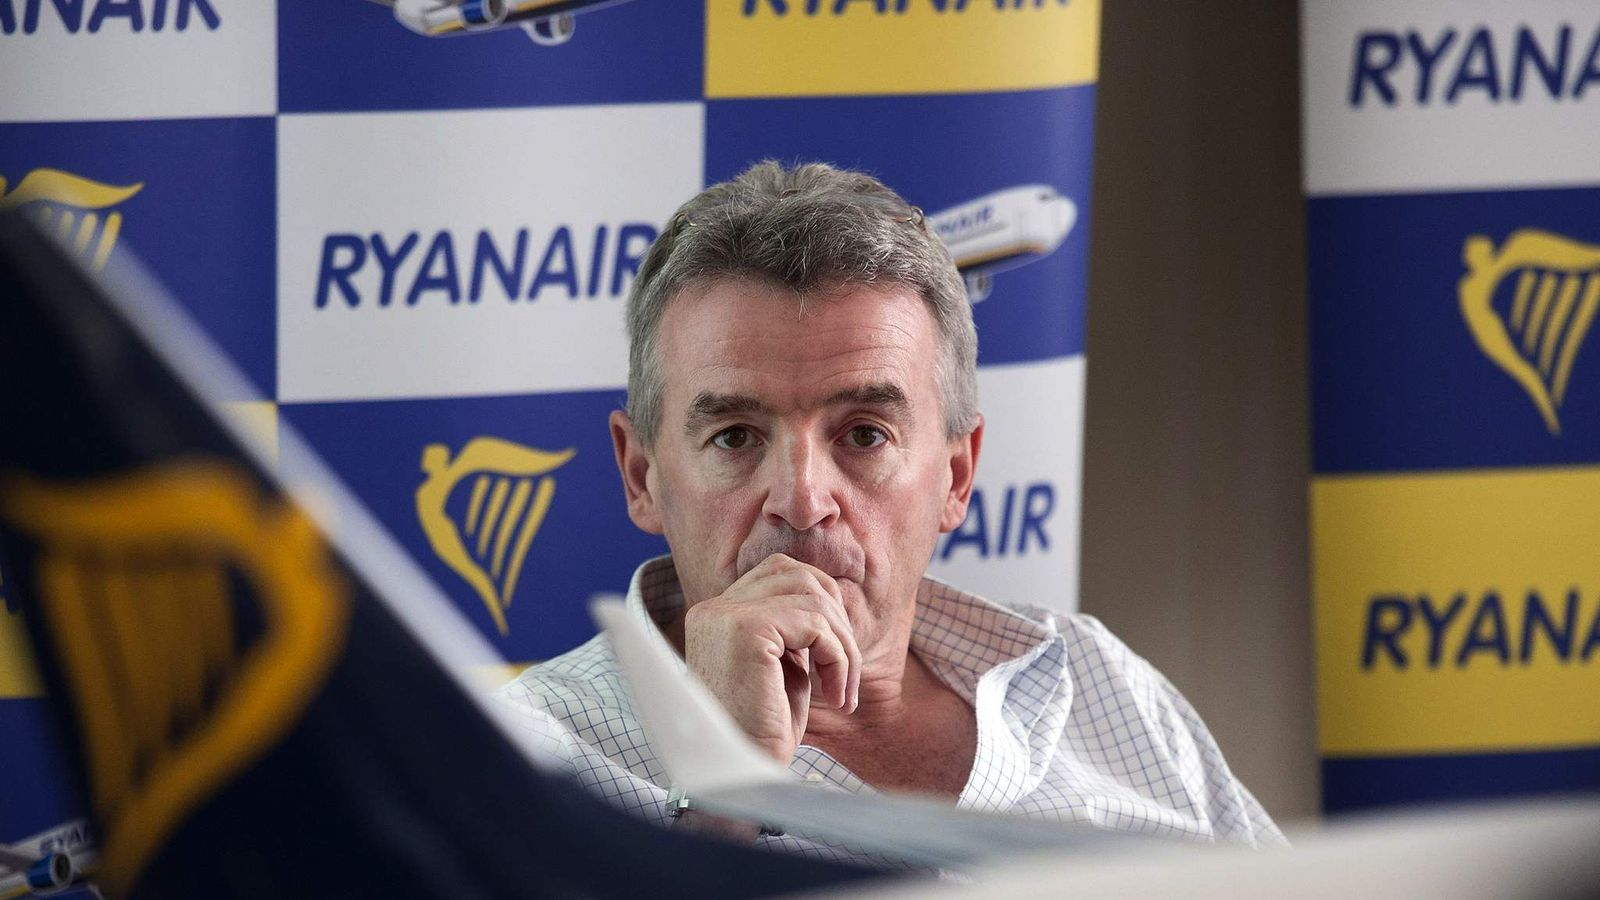 Ryanair's chief executive Michael O'Leary